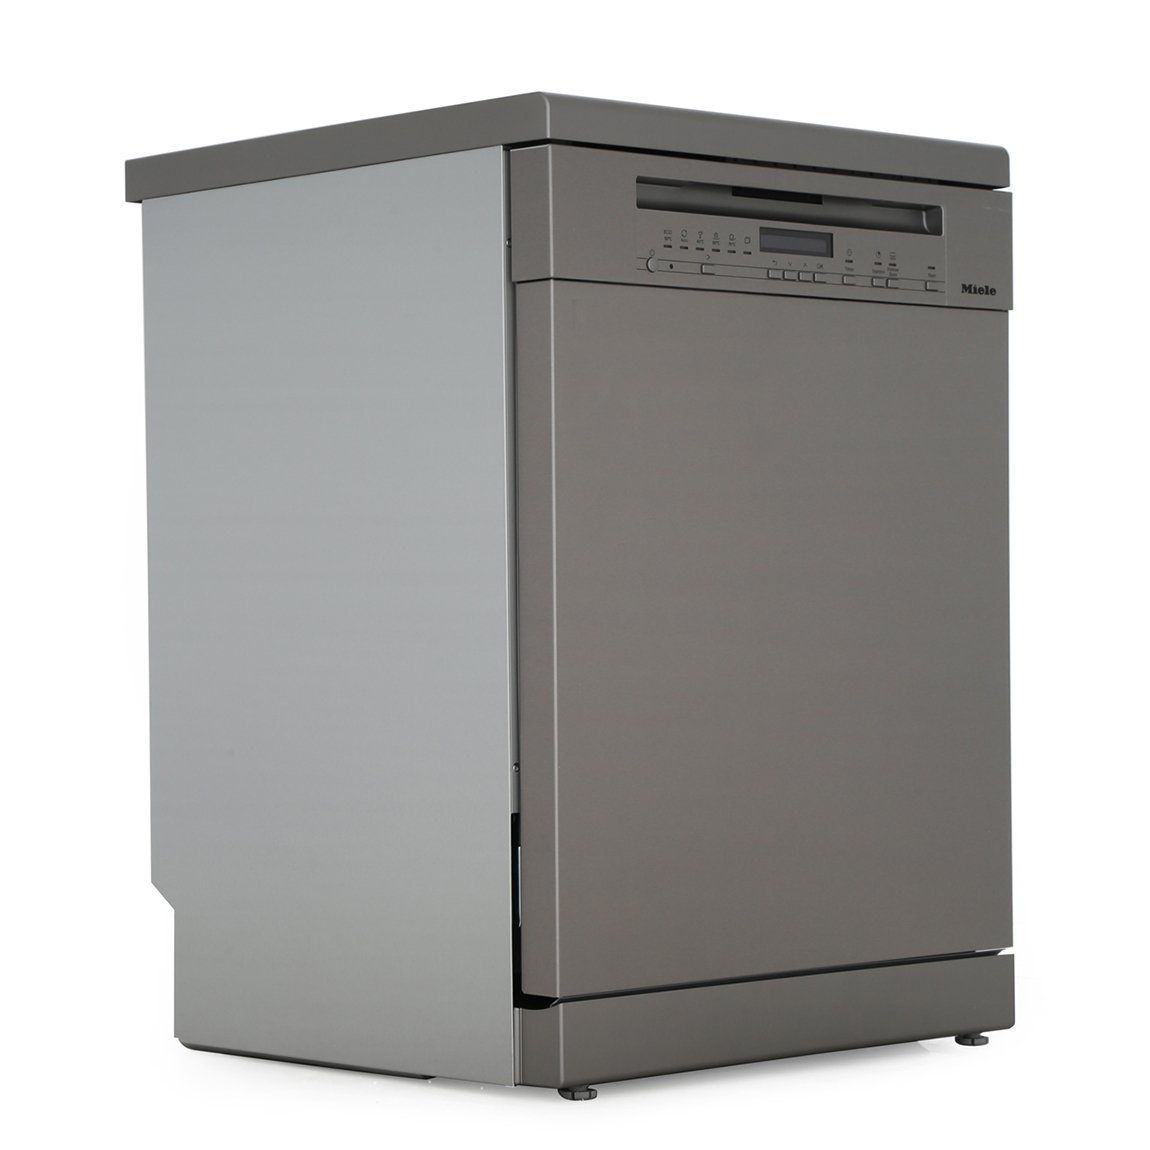 Miele G7100 SC CleanSteel Dishwasher